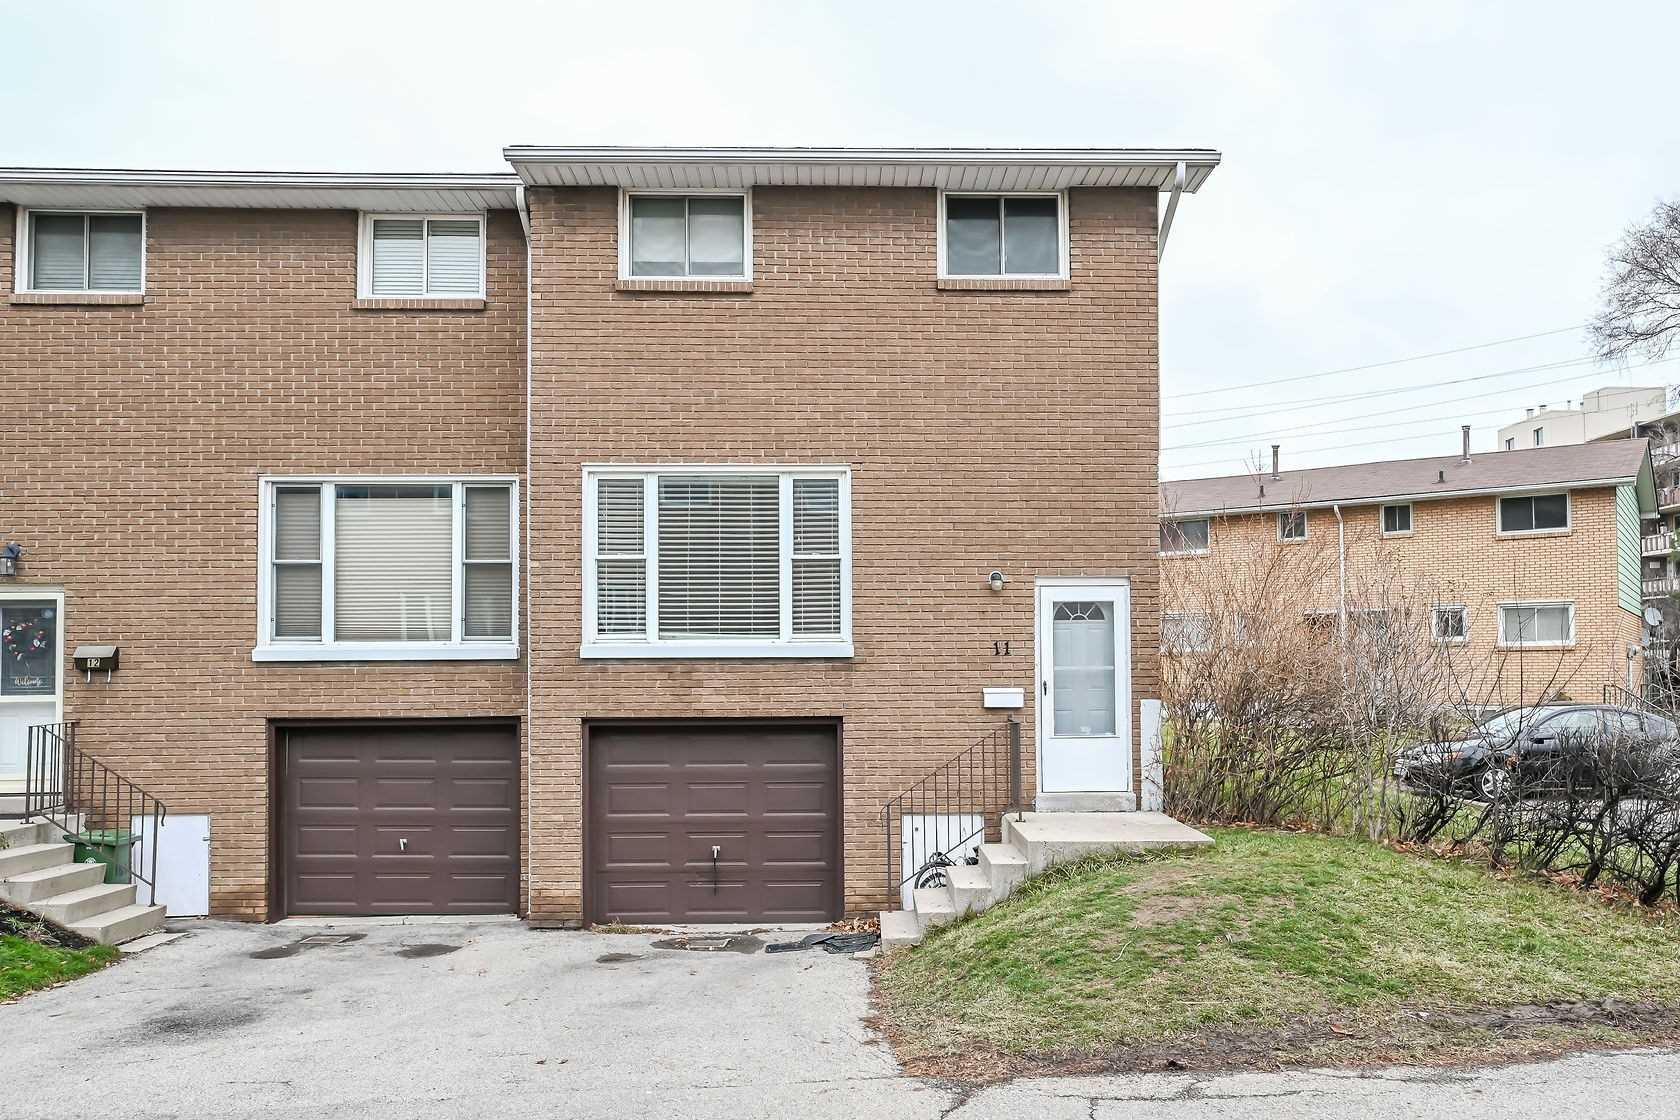 Beautiful Corner Town Home In A Very Desirable Location In East Hamilton. Minutes To Go Station, Bus Transit, All Major Stores, Eastgate Mall, Grocery Store, Food Basic, Costco & More. Riverdale Recreation Center, Parks, Lake Ontario, Confederation Water Park Is Minutes Away. This Is Suitable For Professionals,Small Family. Close To Schools, Parks, Shopping Centers All Major Stores And Much More. No Vaping, No Marijuana, No Pets, No Exceptions.